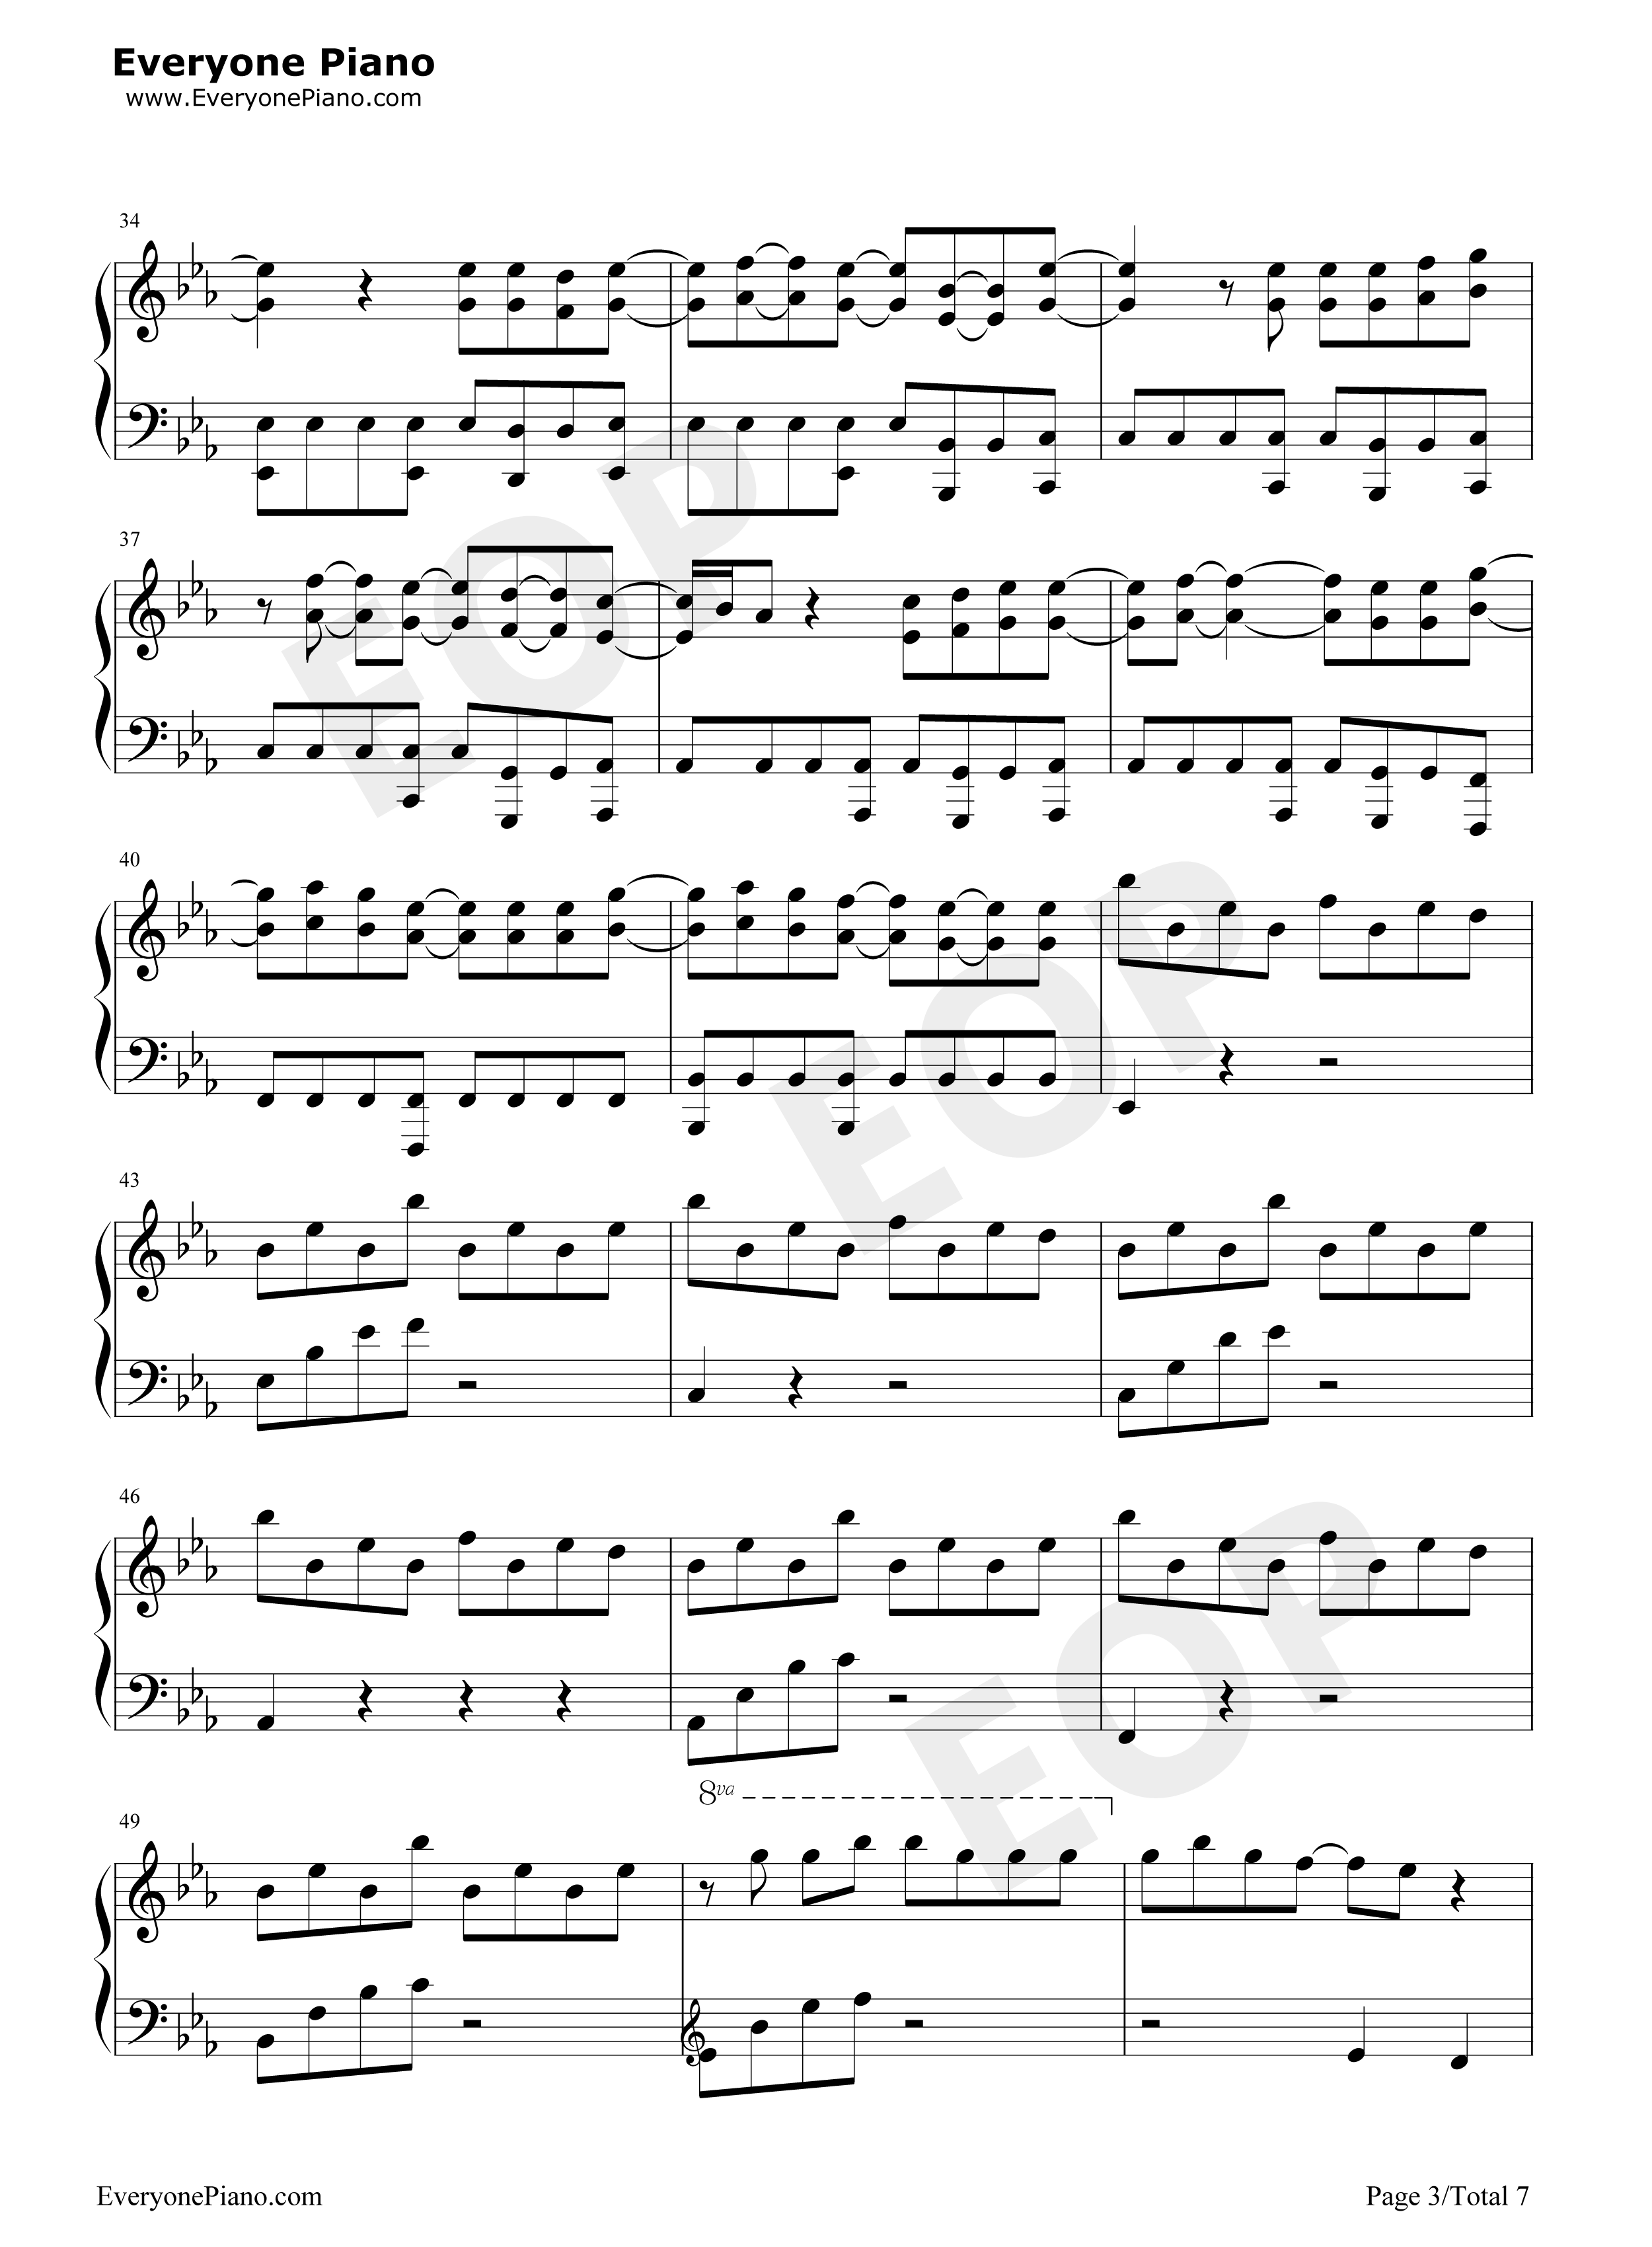 Peter pan exo stave preview 3 free piano sheet music piano chords listen now print sheet peter pan exo stave preview 3 hexwebz Images